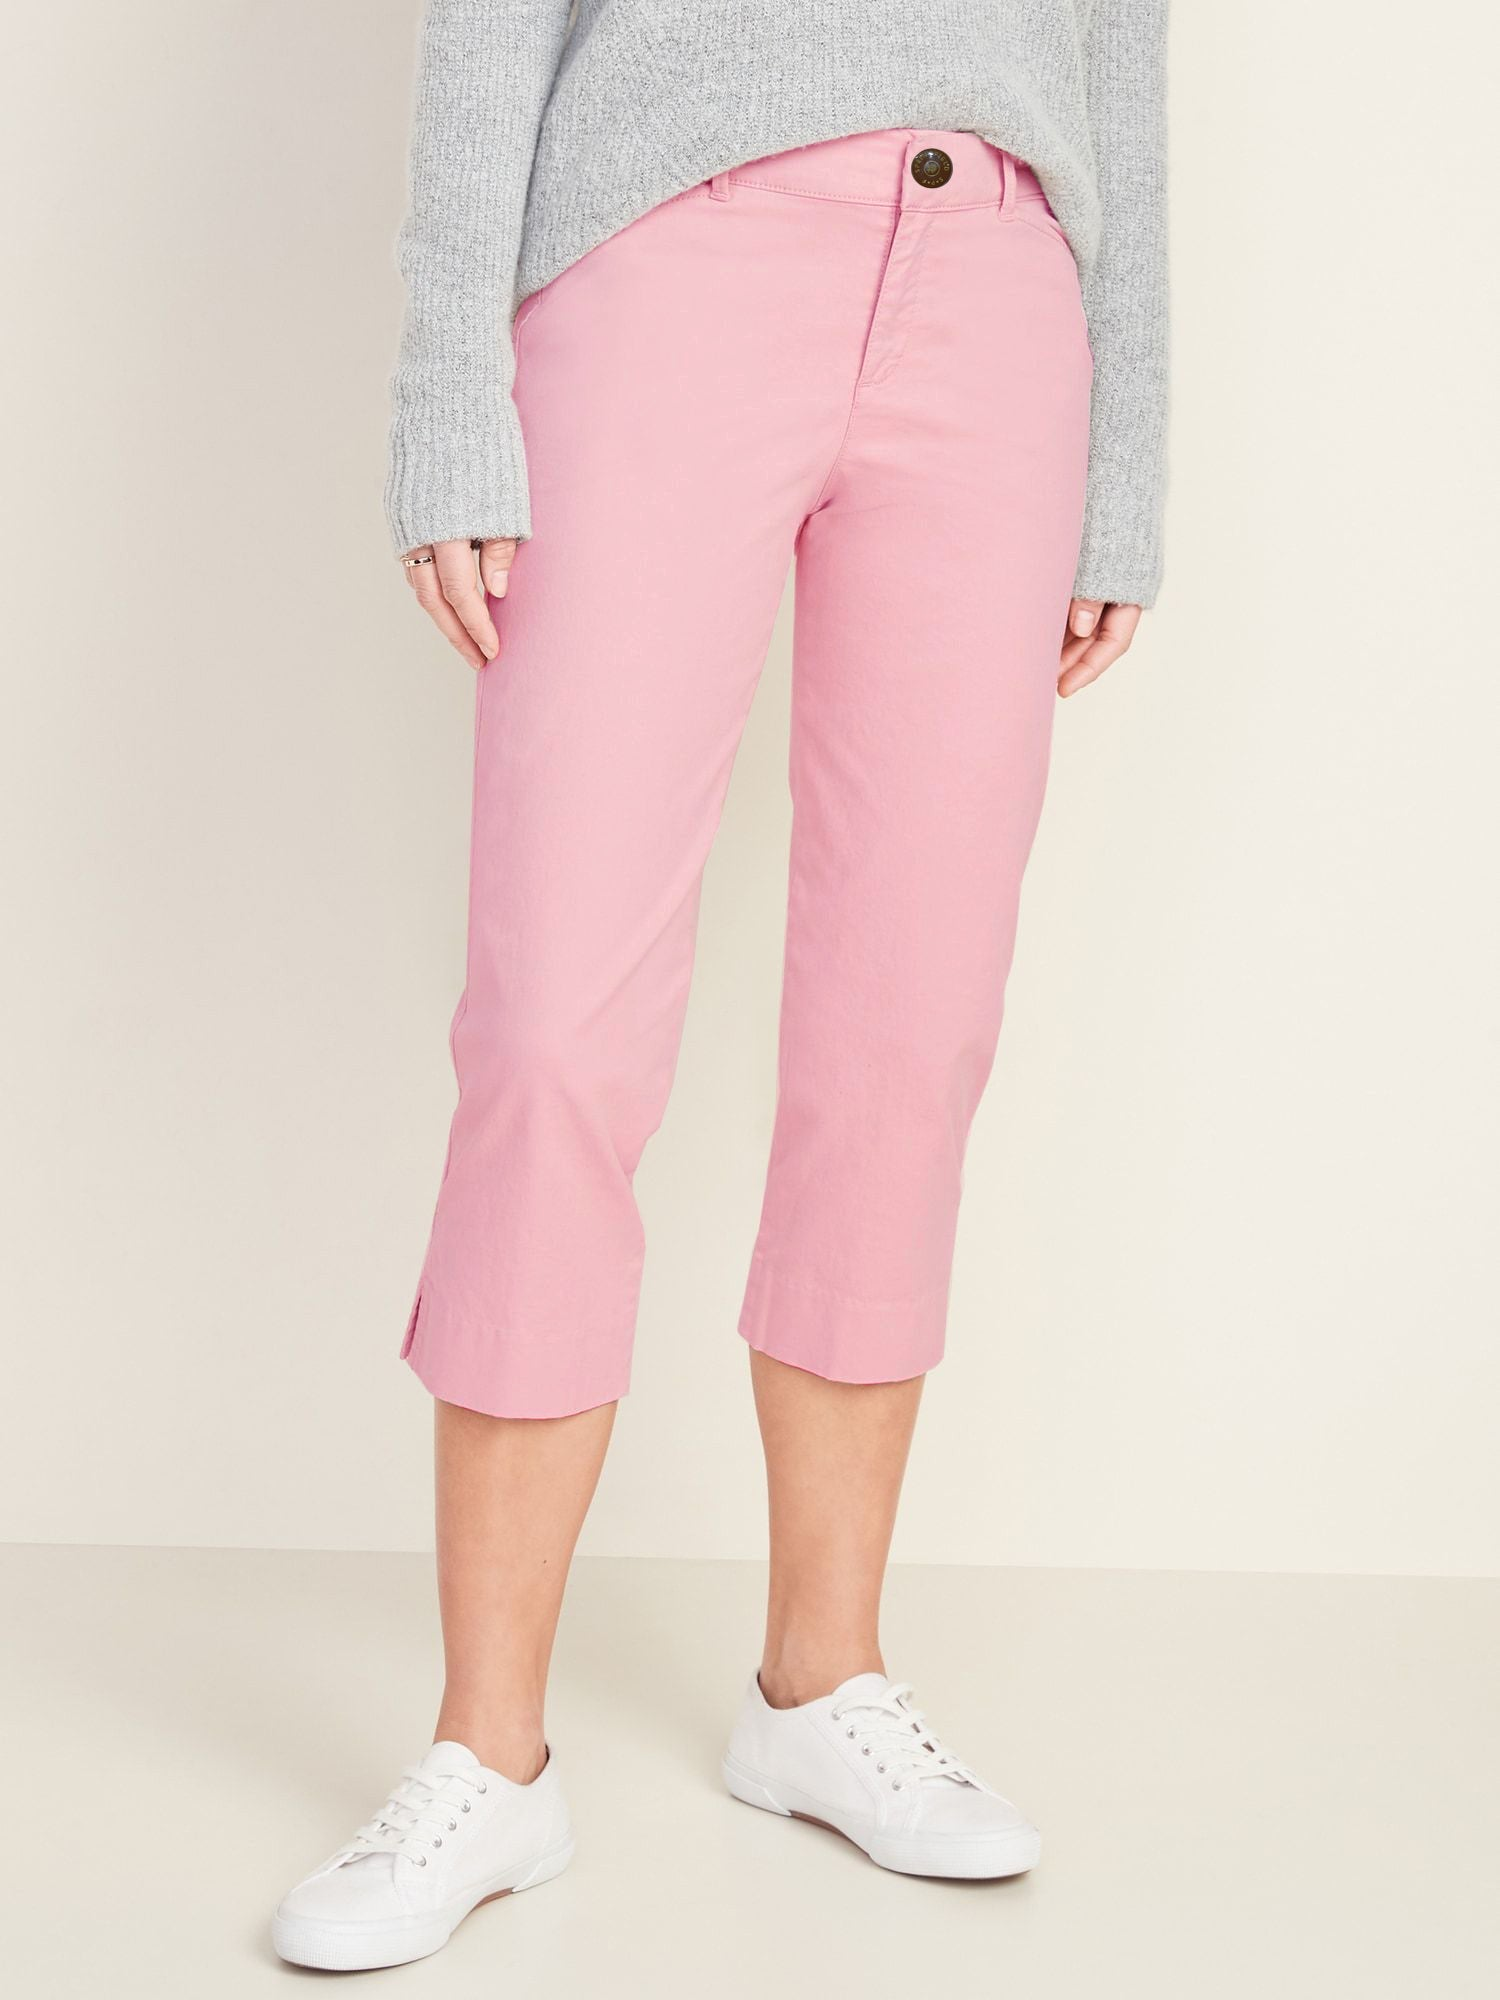 Springfield Slim Fit Stretch Capri For Ladies-Baby Pink-F174